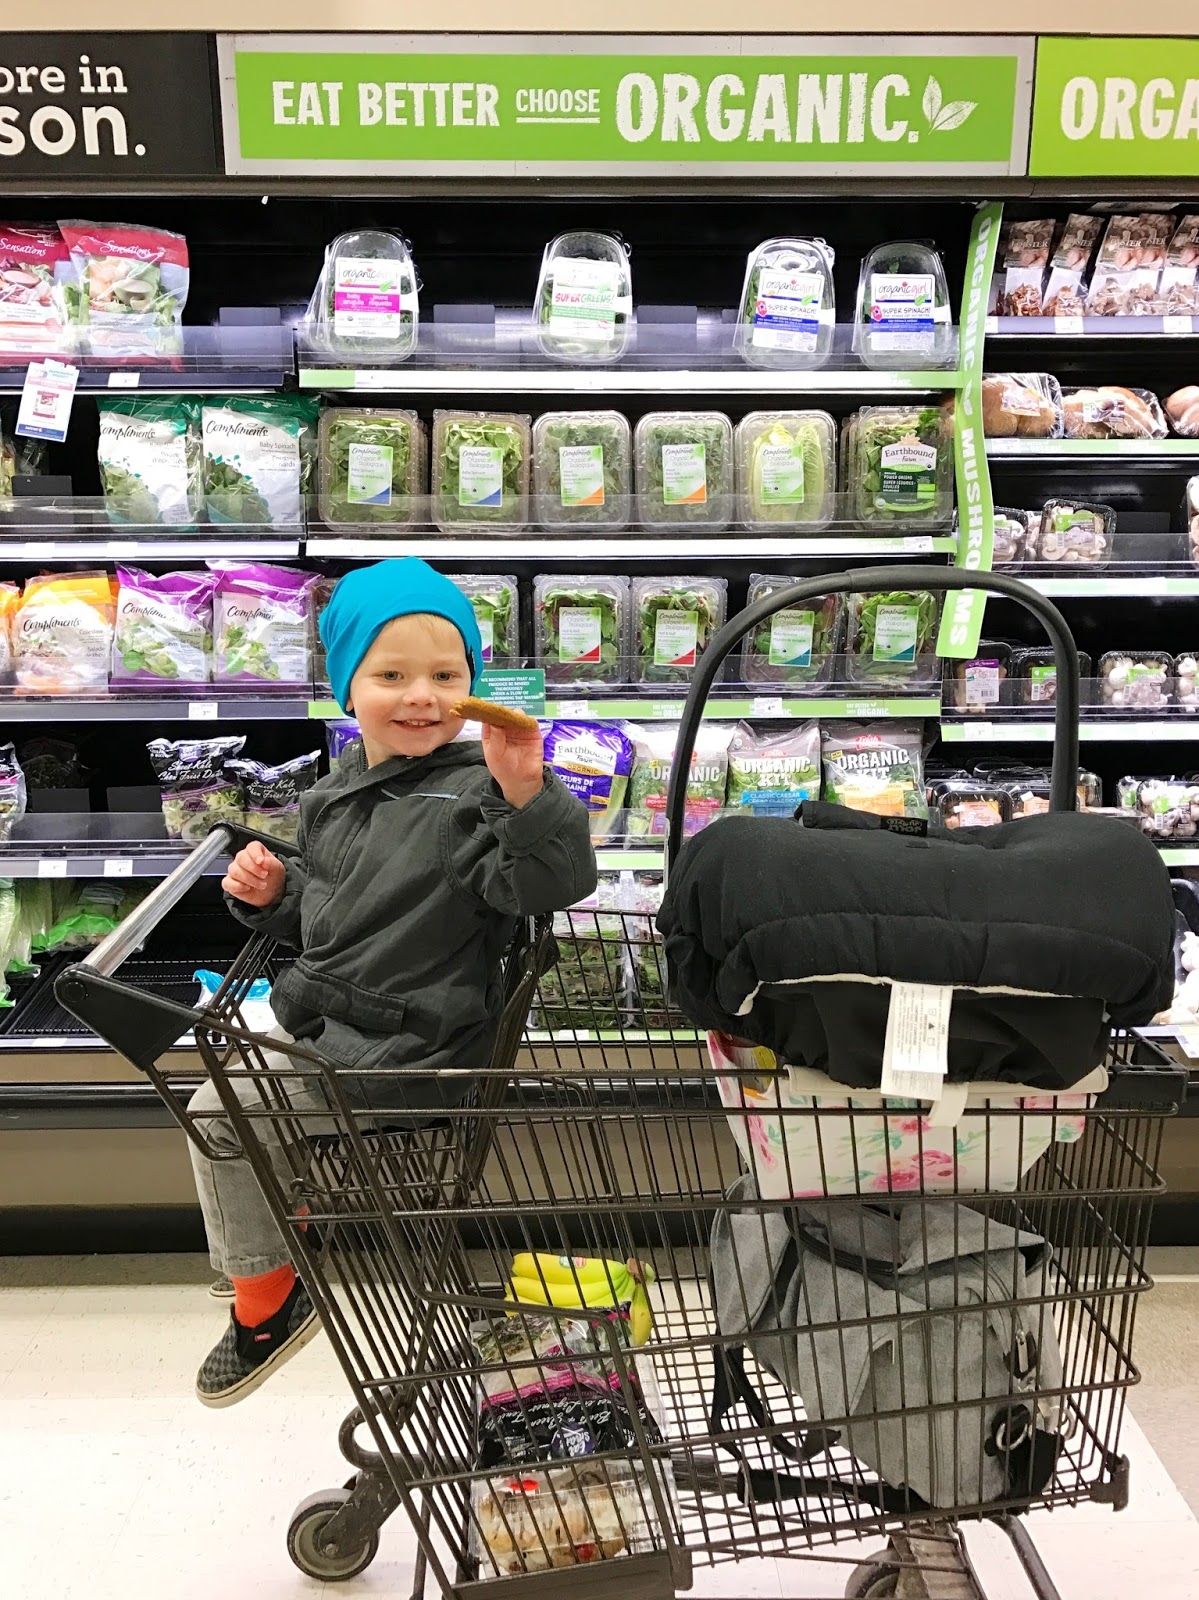 How To Make Shopping With Kids Easier